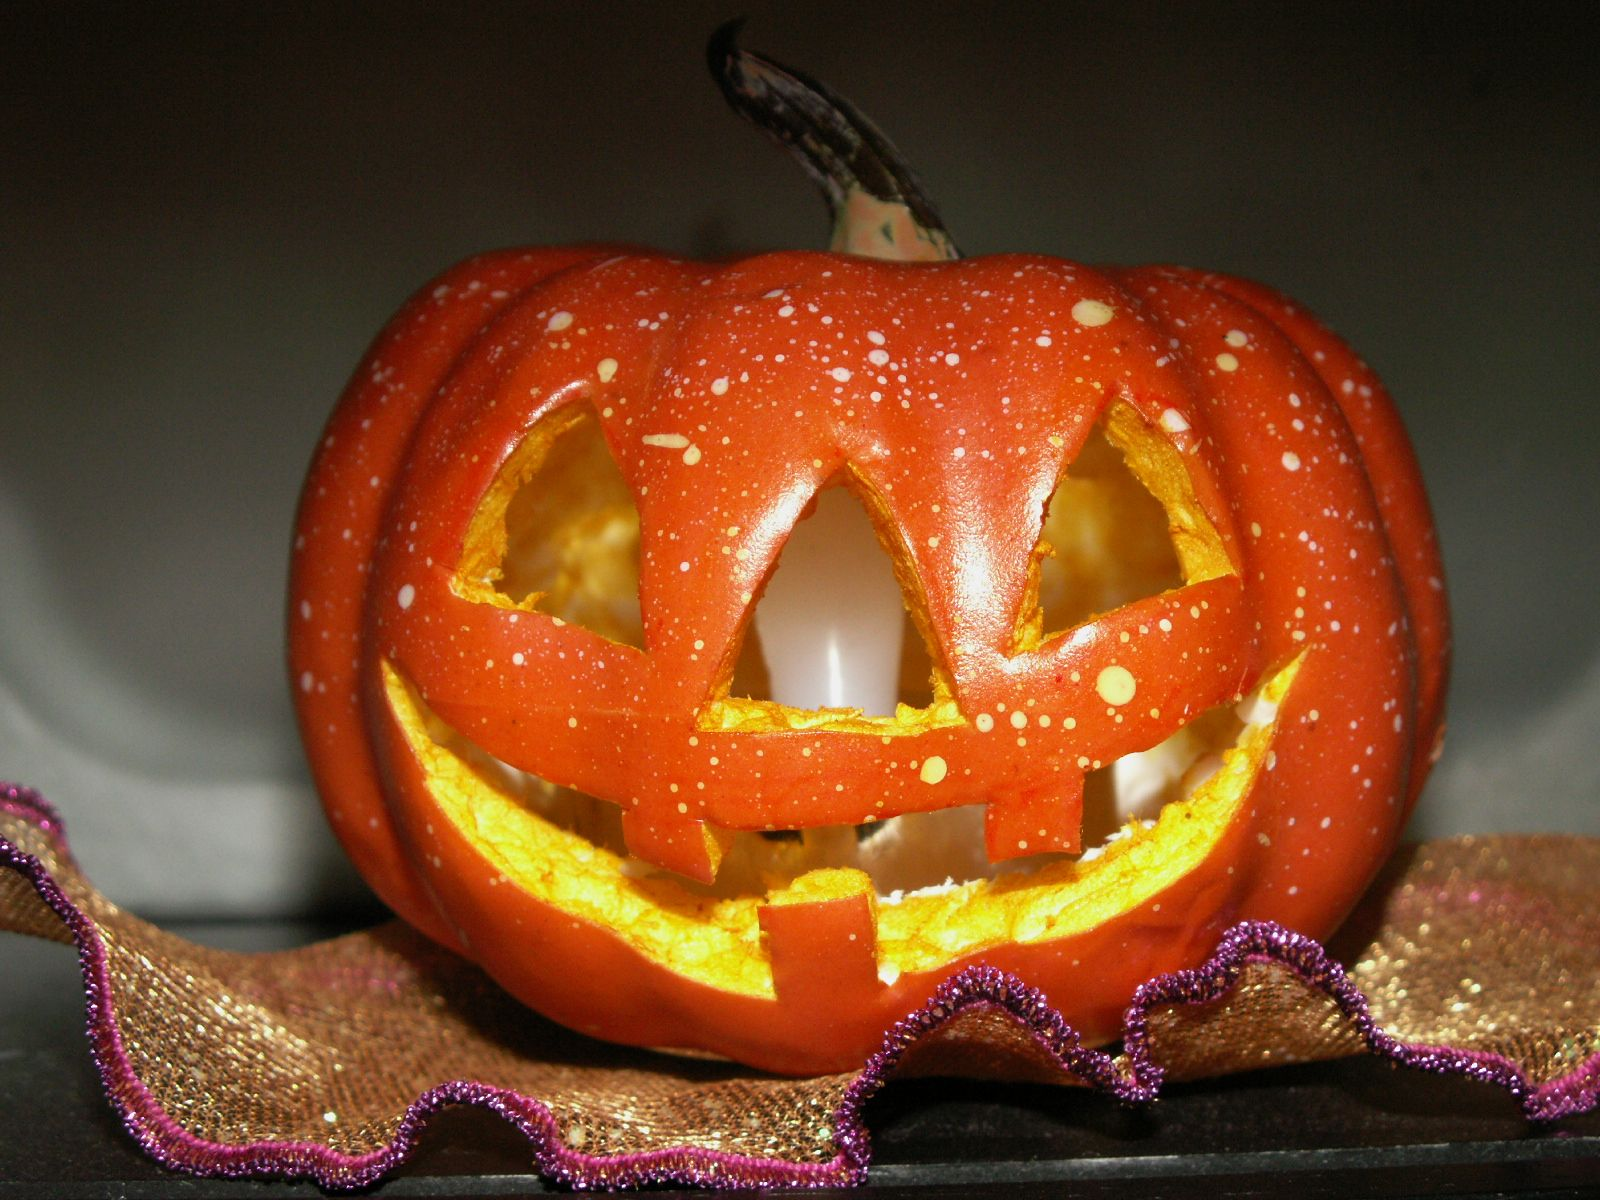 """Barbie-sized OOAK Jack-O-Lantern was hand carved by MiKelman for a dear friend in 2013. A battery-operated tea light flickers and adds an extra element of realism when Barbie """"lights"""" it up for Halloween Trick Or Treaters!"""